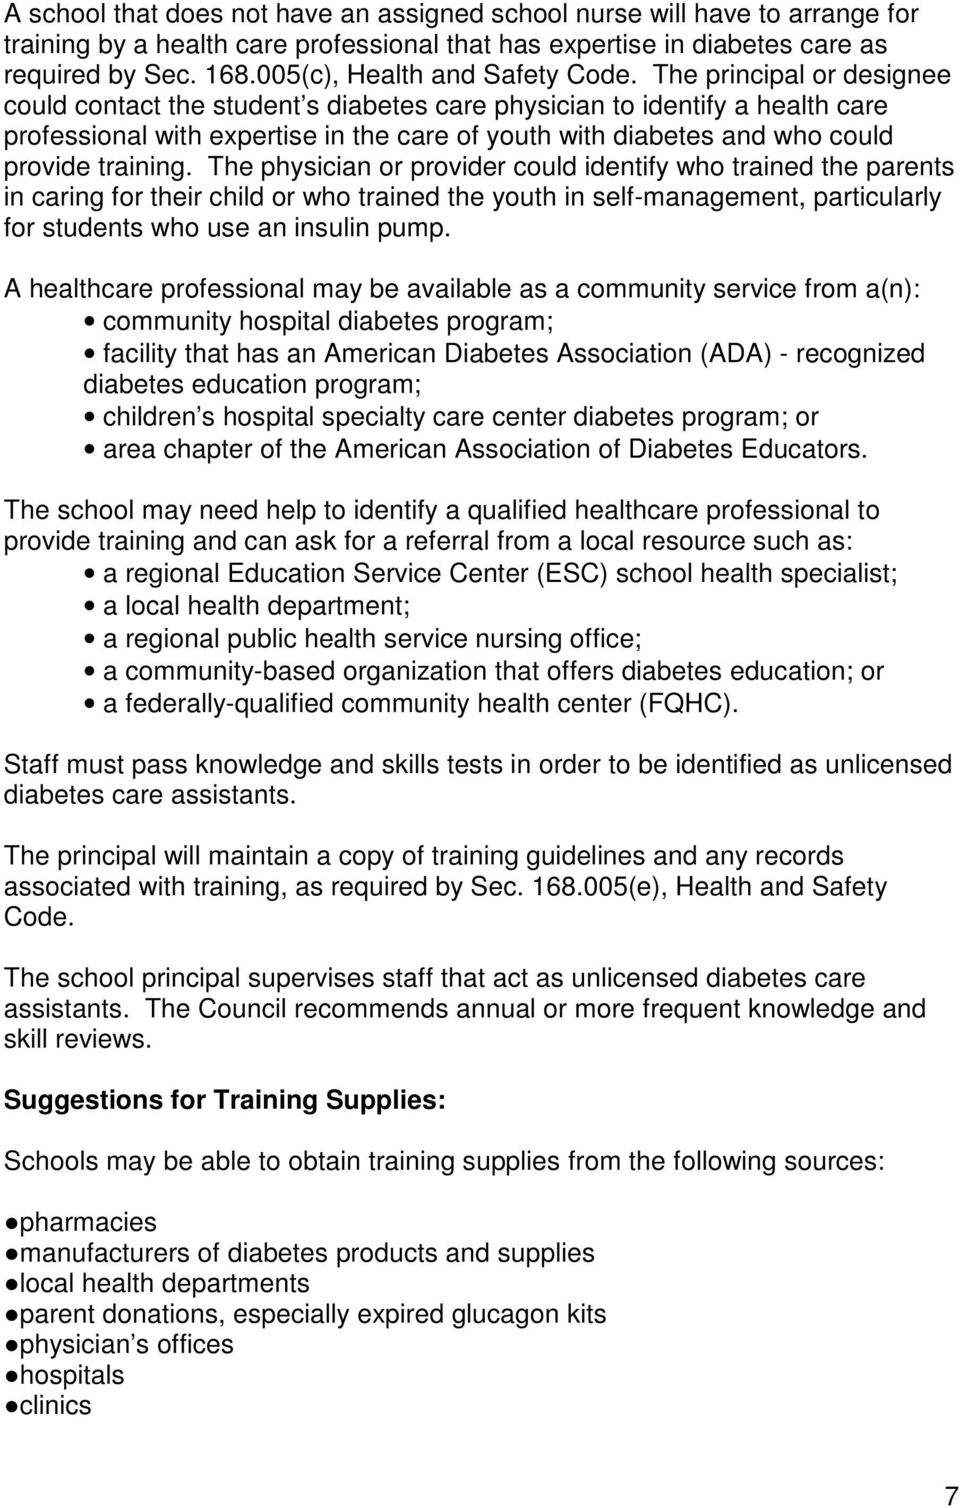 The principal or designee could contact the student s diabetes care physician to identify a health care professional with expertise in the care of youth with diabetes and who could provide training.